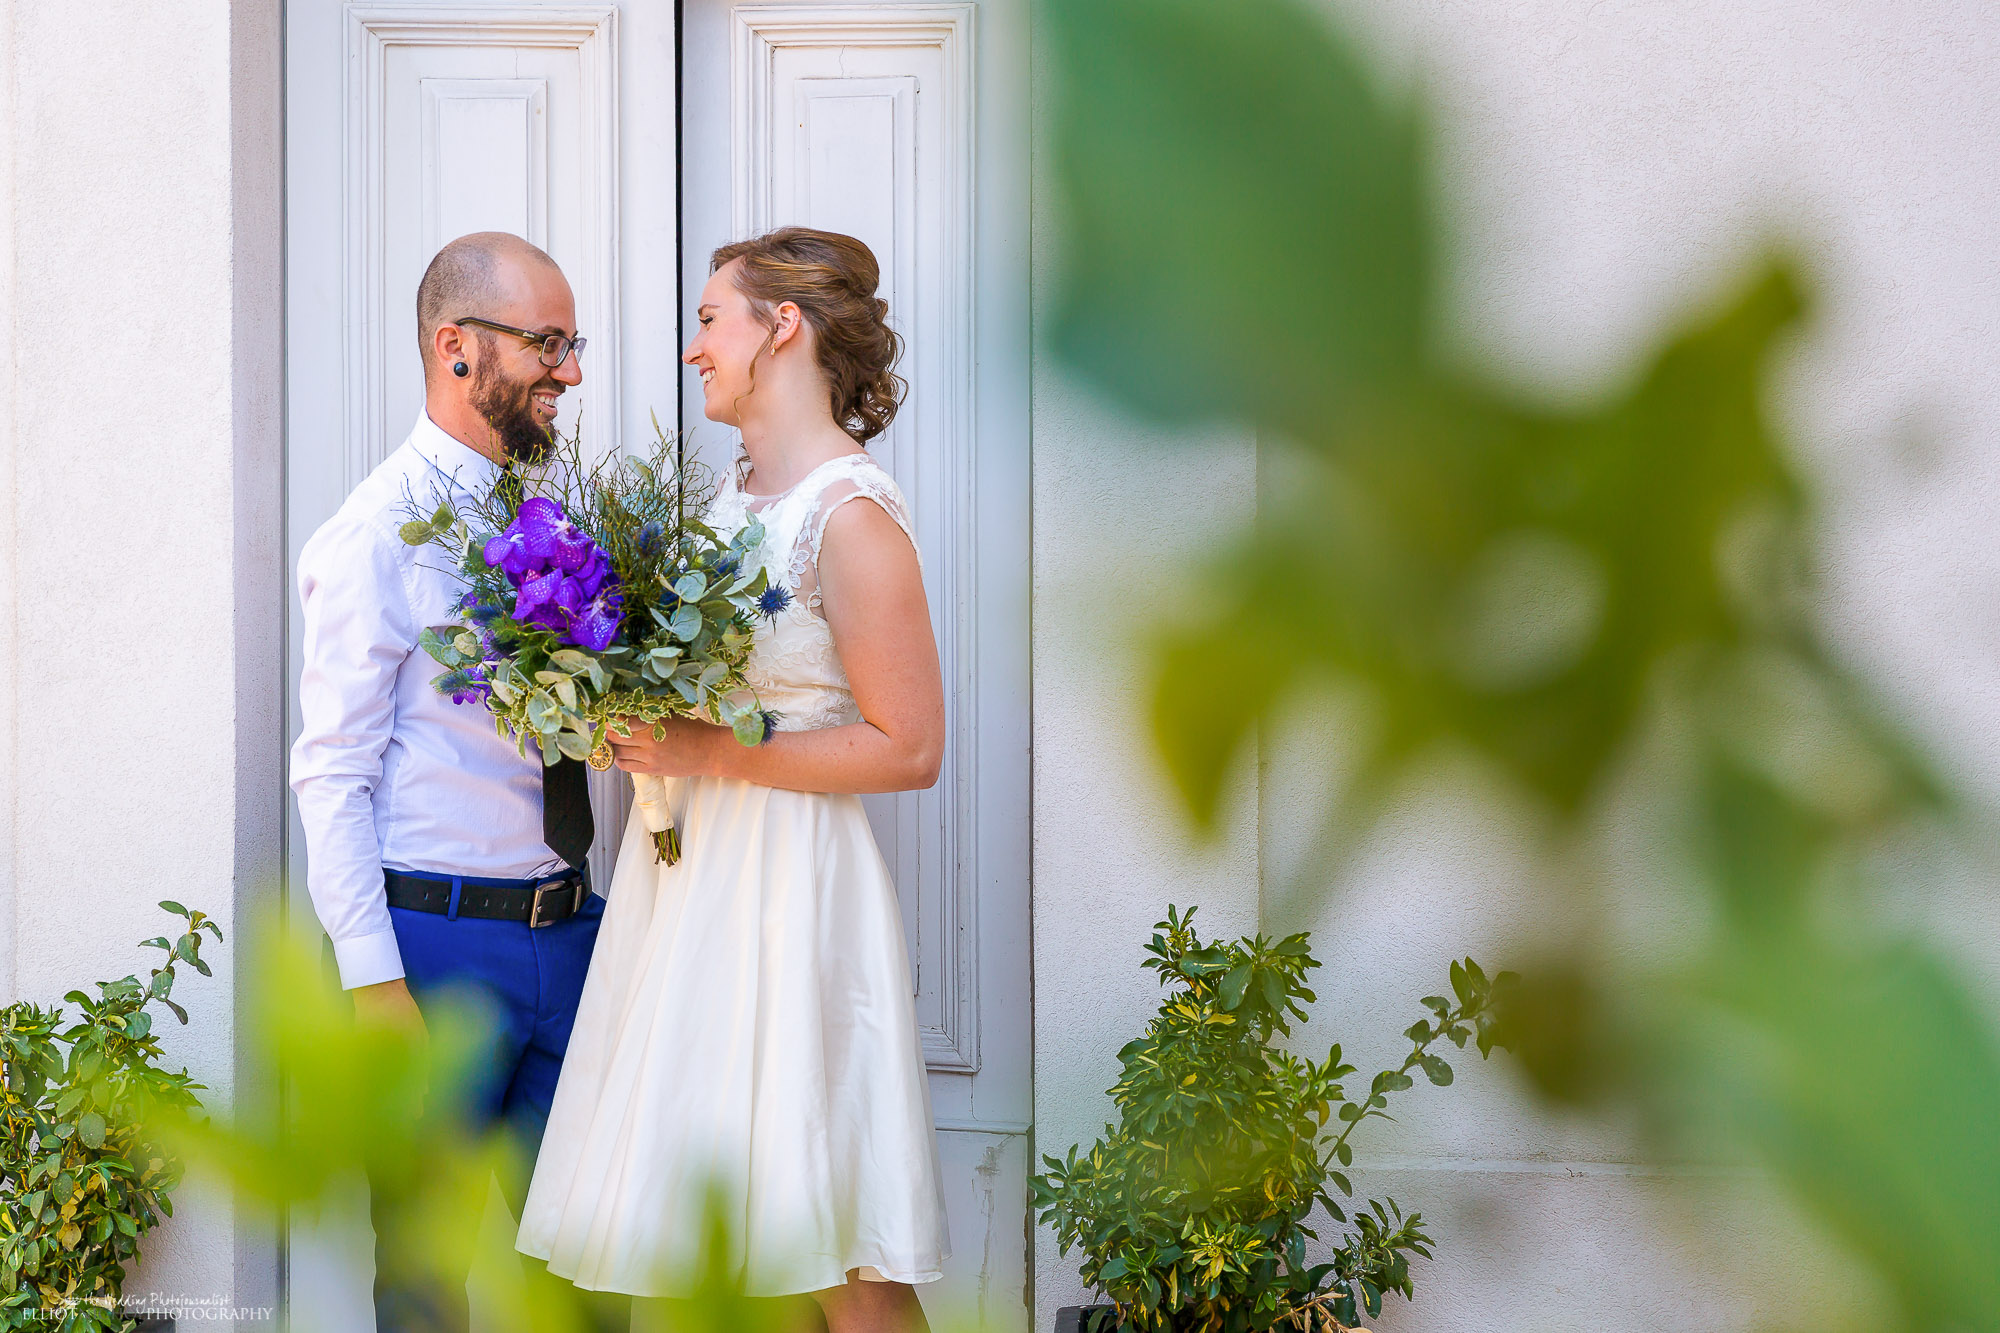 Groom collects his bride to go to their destination wedding blessing.